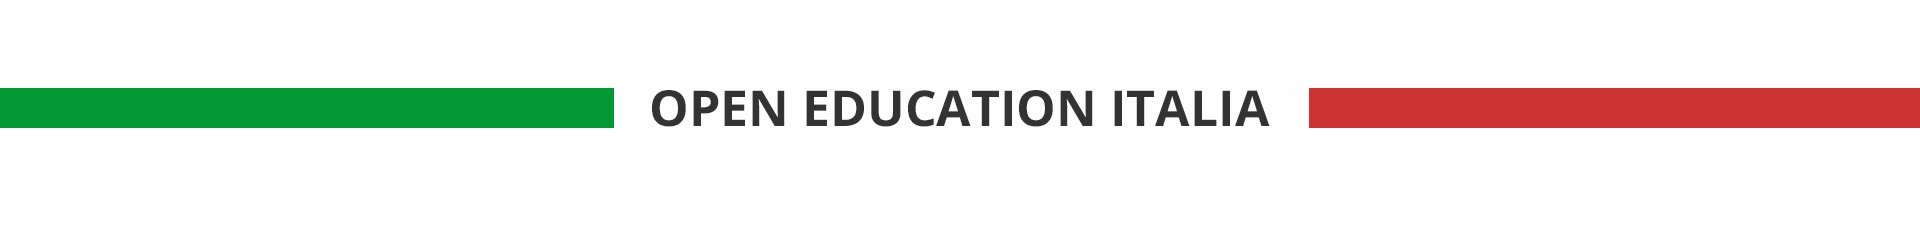 Open Education Italia